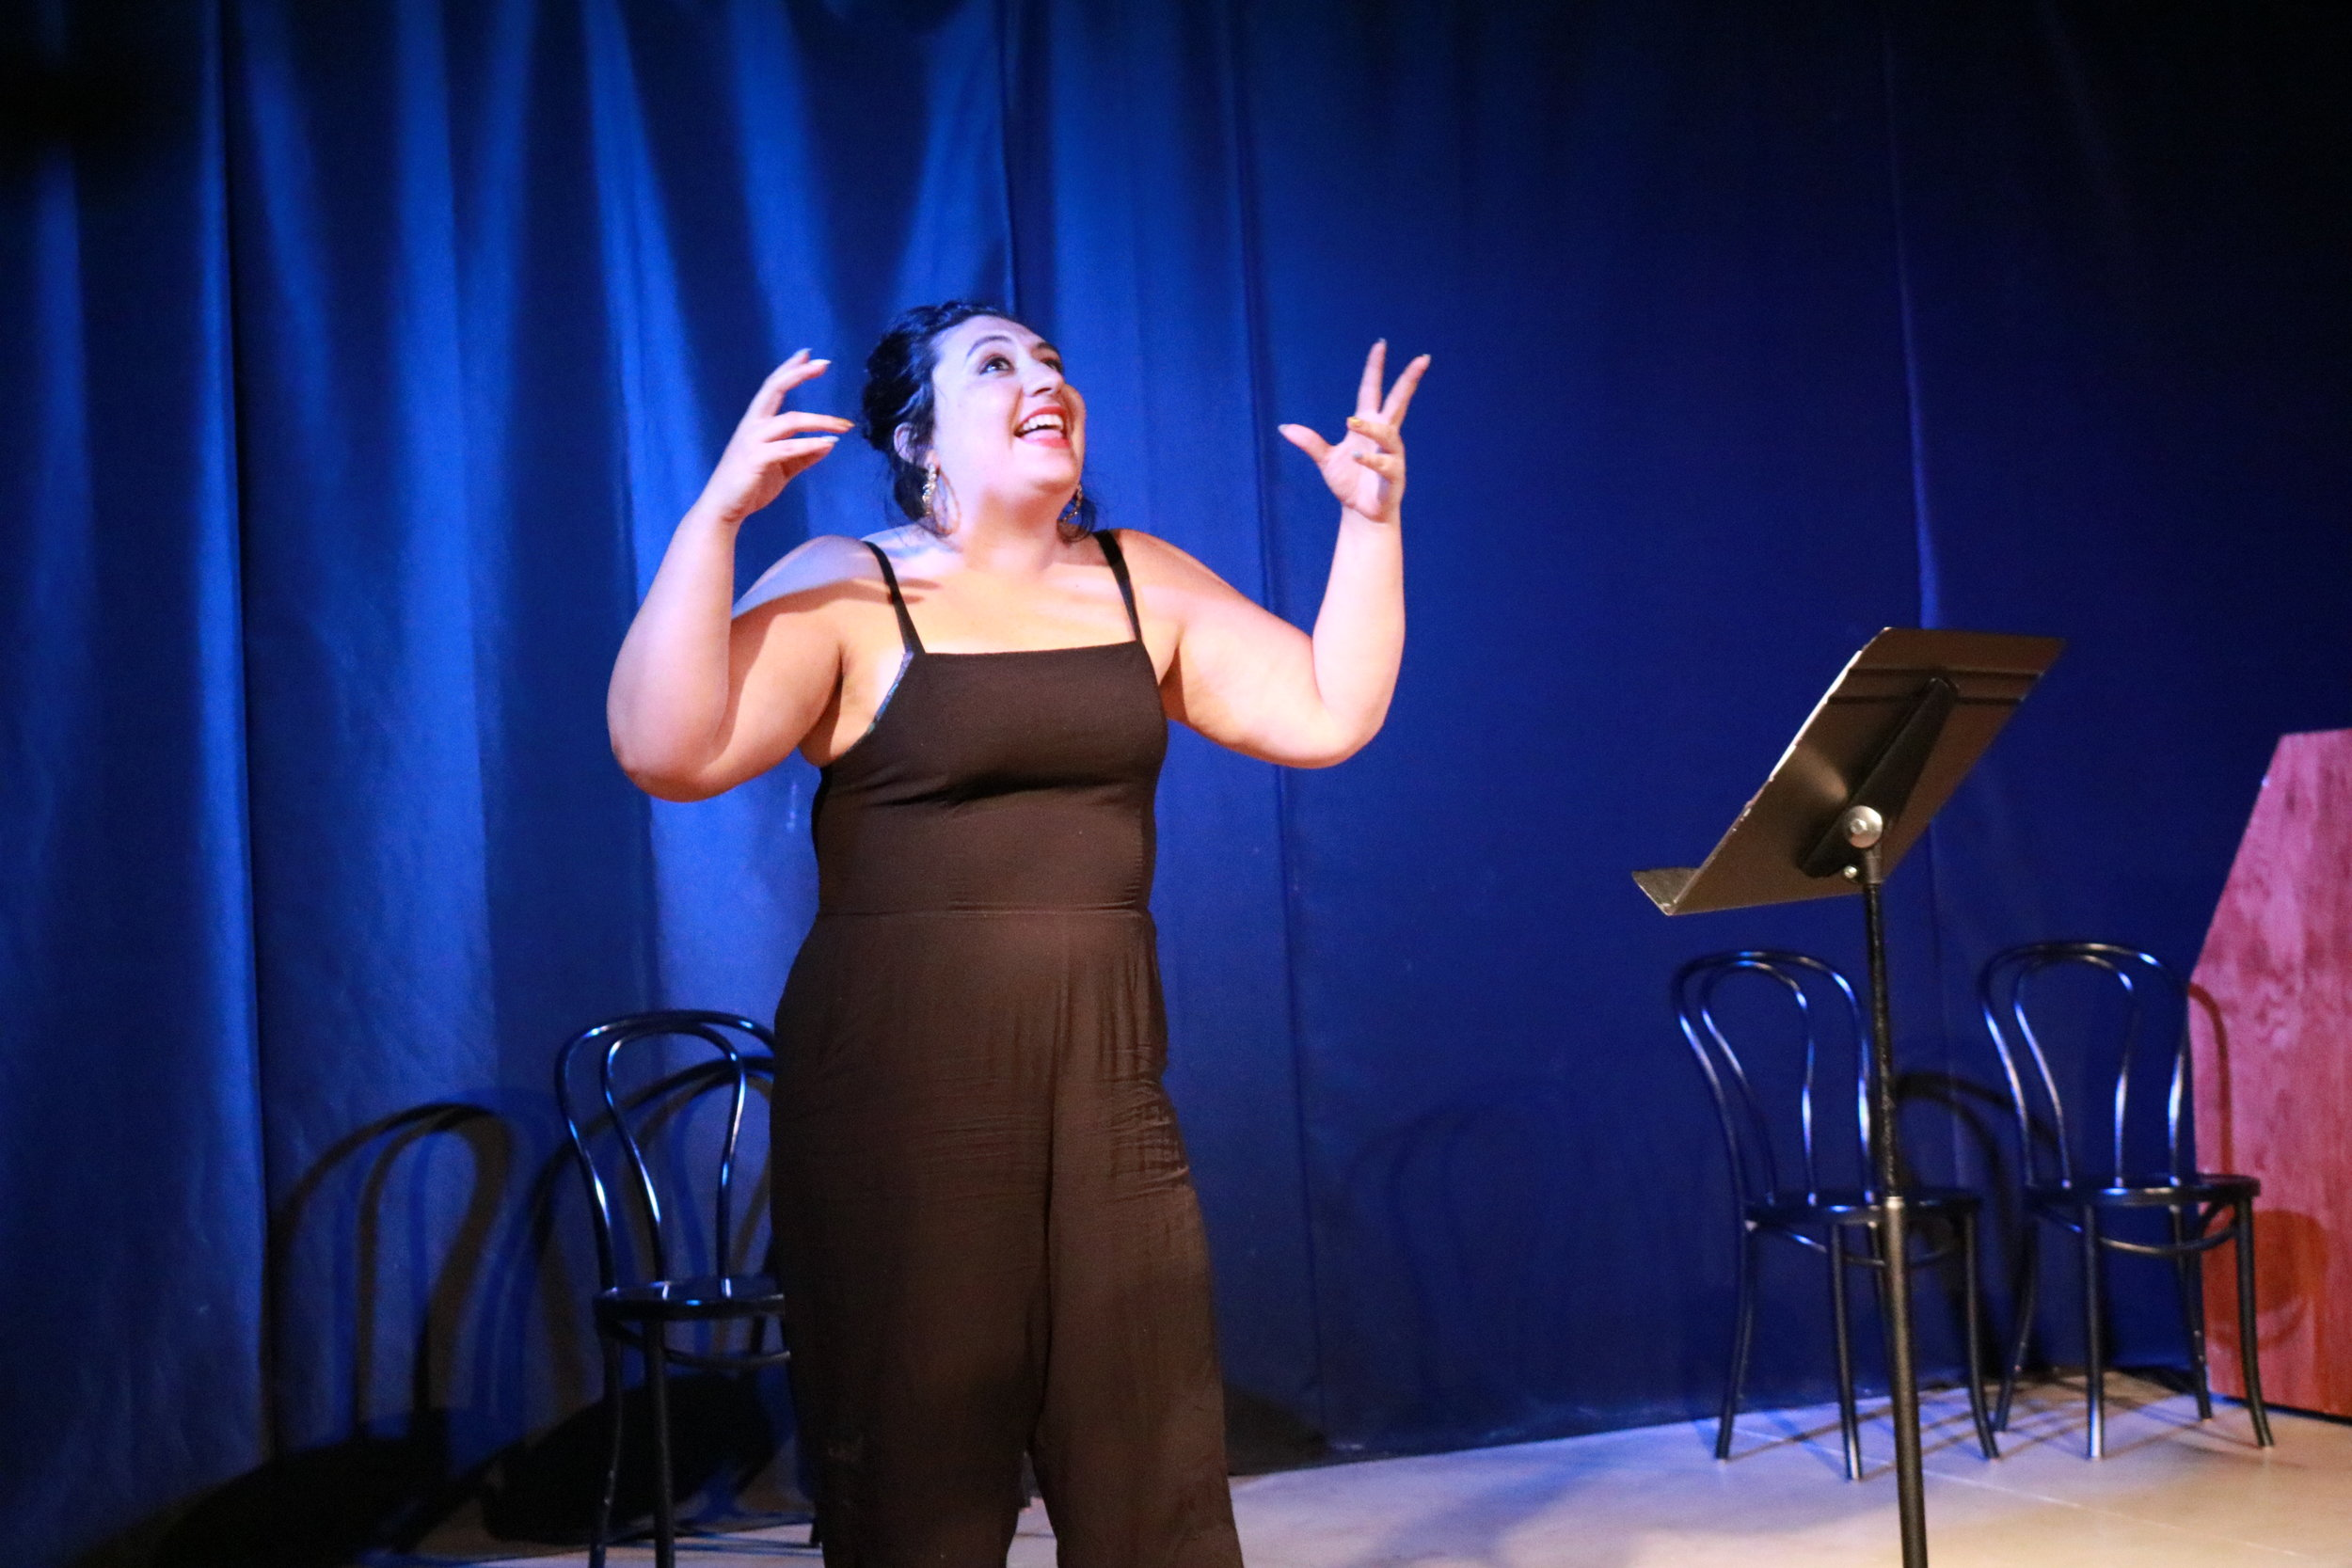 Comedian and writer Maria Konopken performs a highly personal poetry piece about her struggle with mental illness and getting help. Photo by Maia McDonald